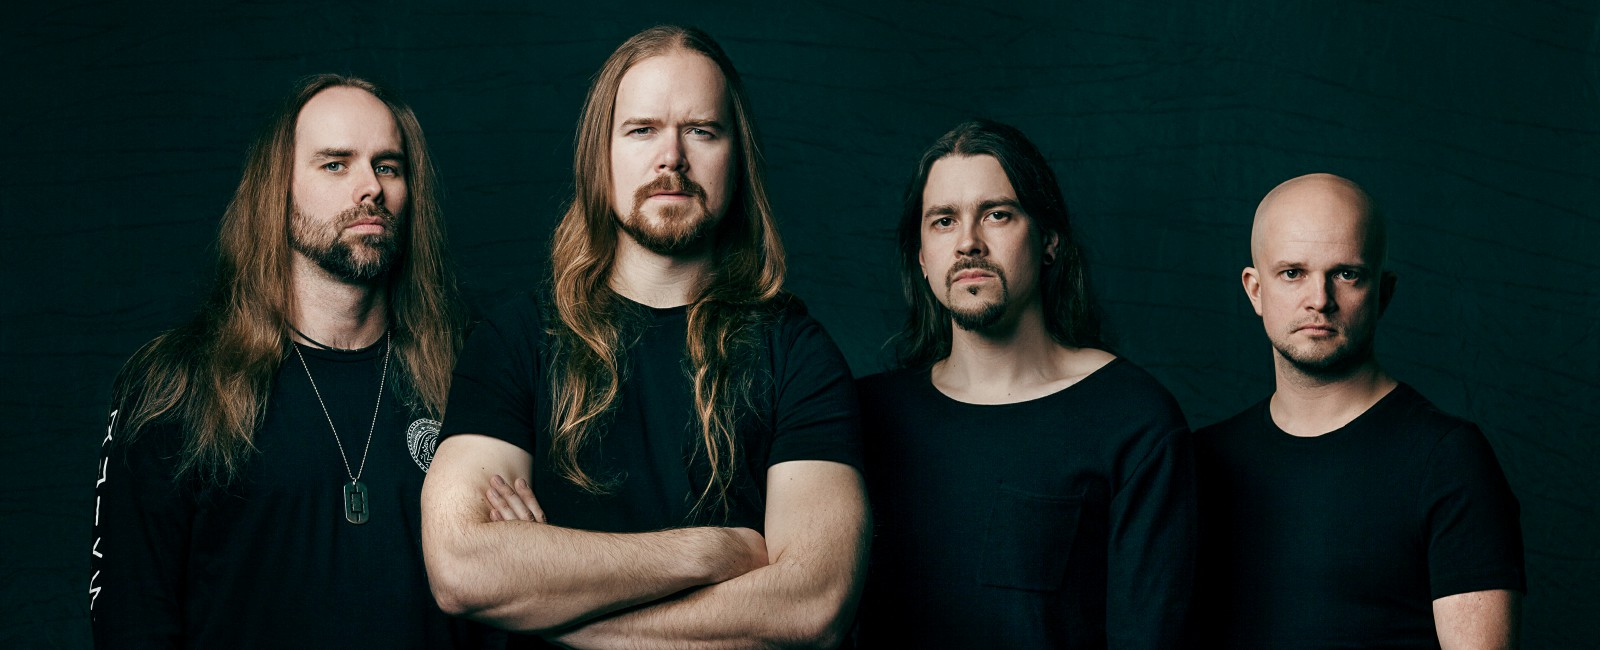 Band Photo Insomnium3crop